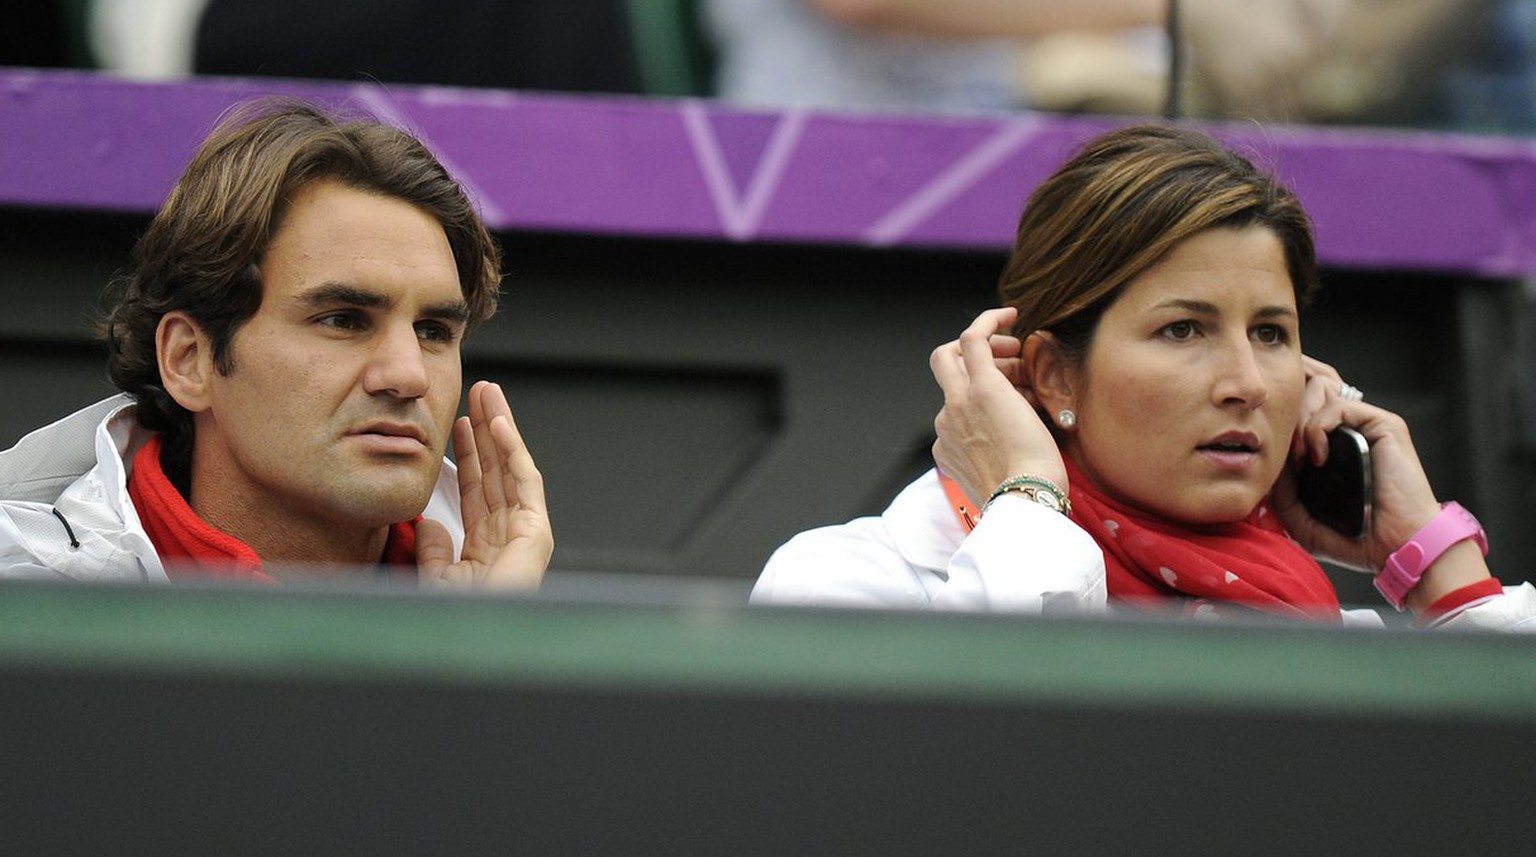 Switzerland's Roger Federer, left, and his wife Mirka follow the Men's first round singles match between Switzerland's Stanislas Wawrinka and Britain's Andy Murray at Wimbledon in London, Great Britain, at the London 2012 Olympic Summer Games, pictured on Sunday, July 29, 2012. (KEYSTONE/Jean-Christophe Bott)